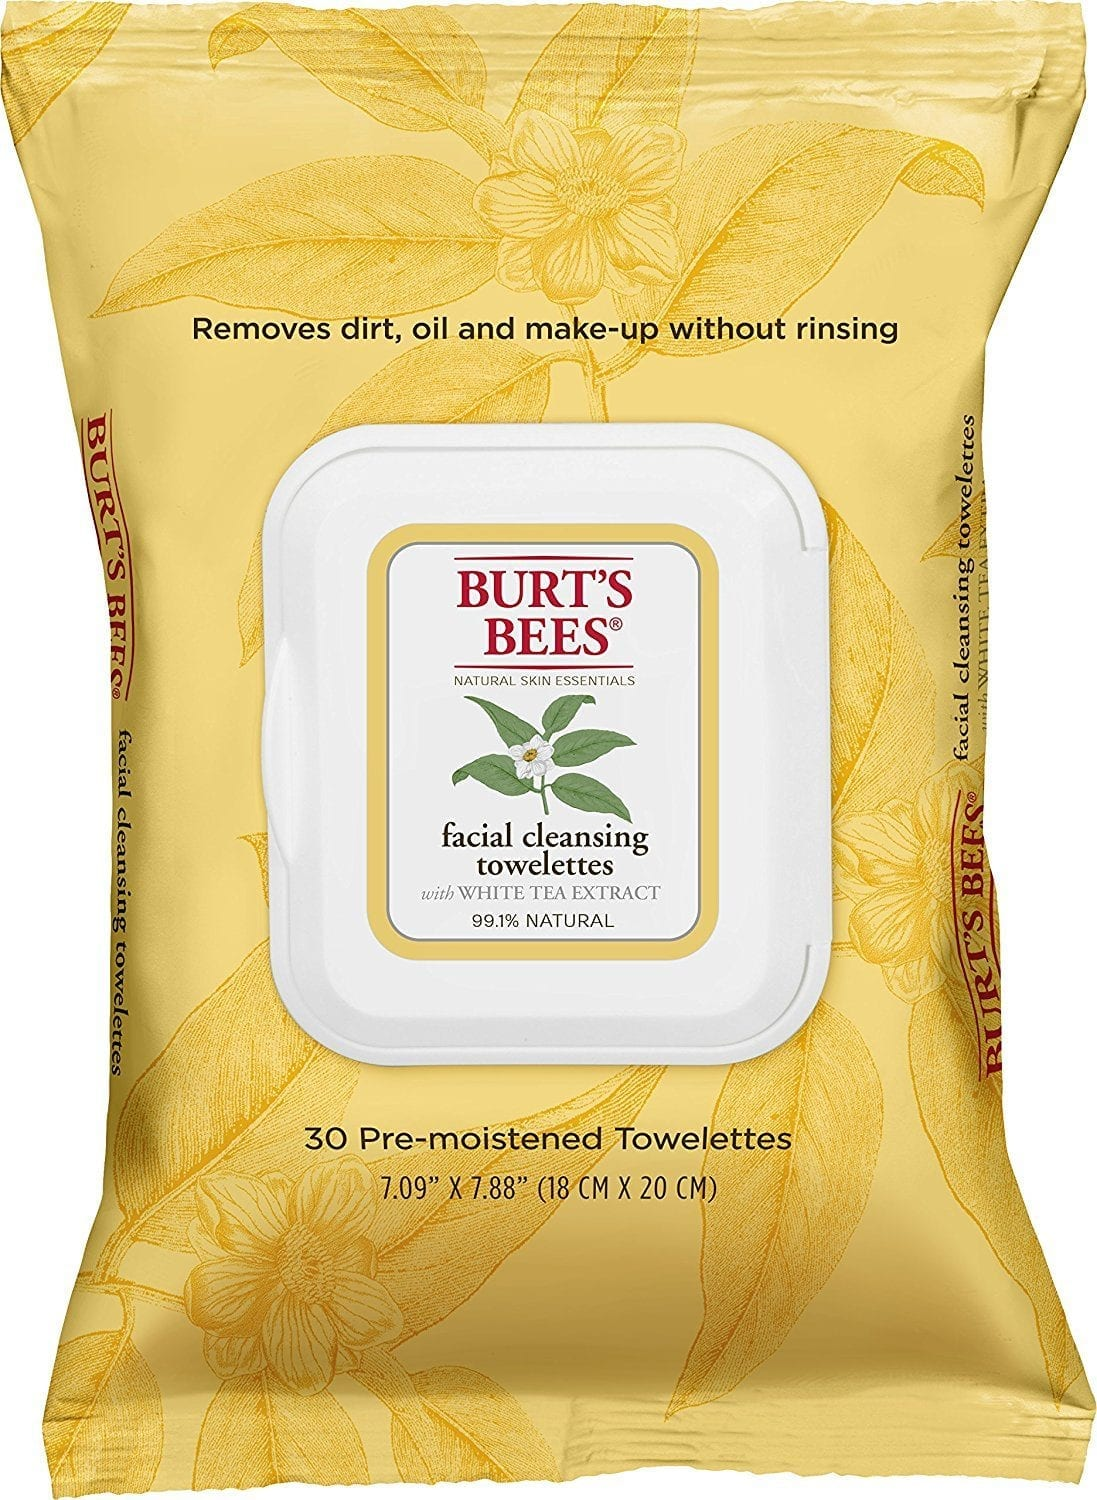 Burt's Bees Wipes